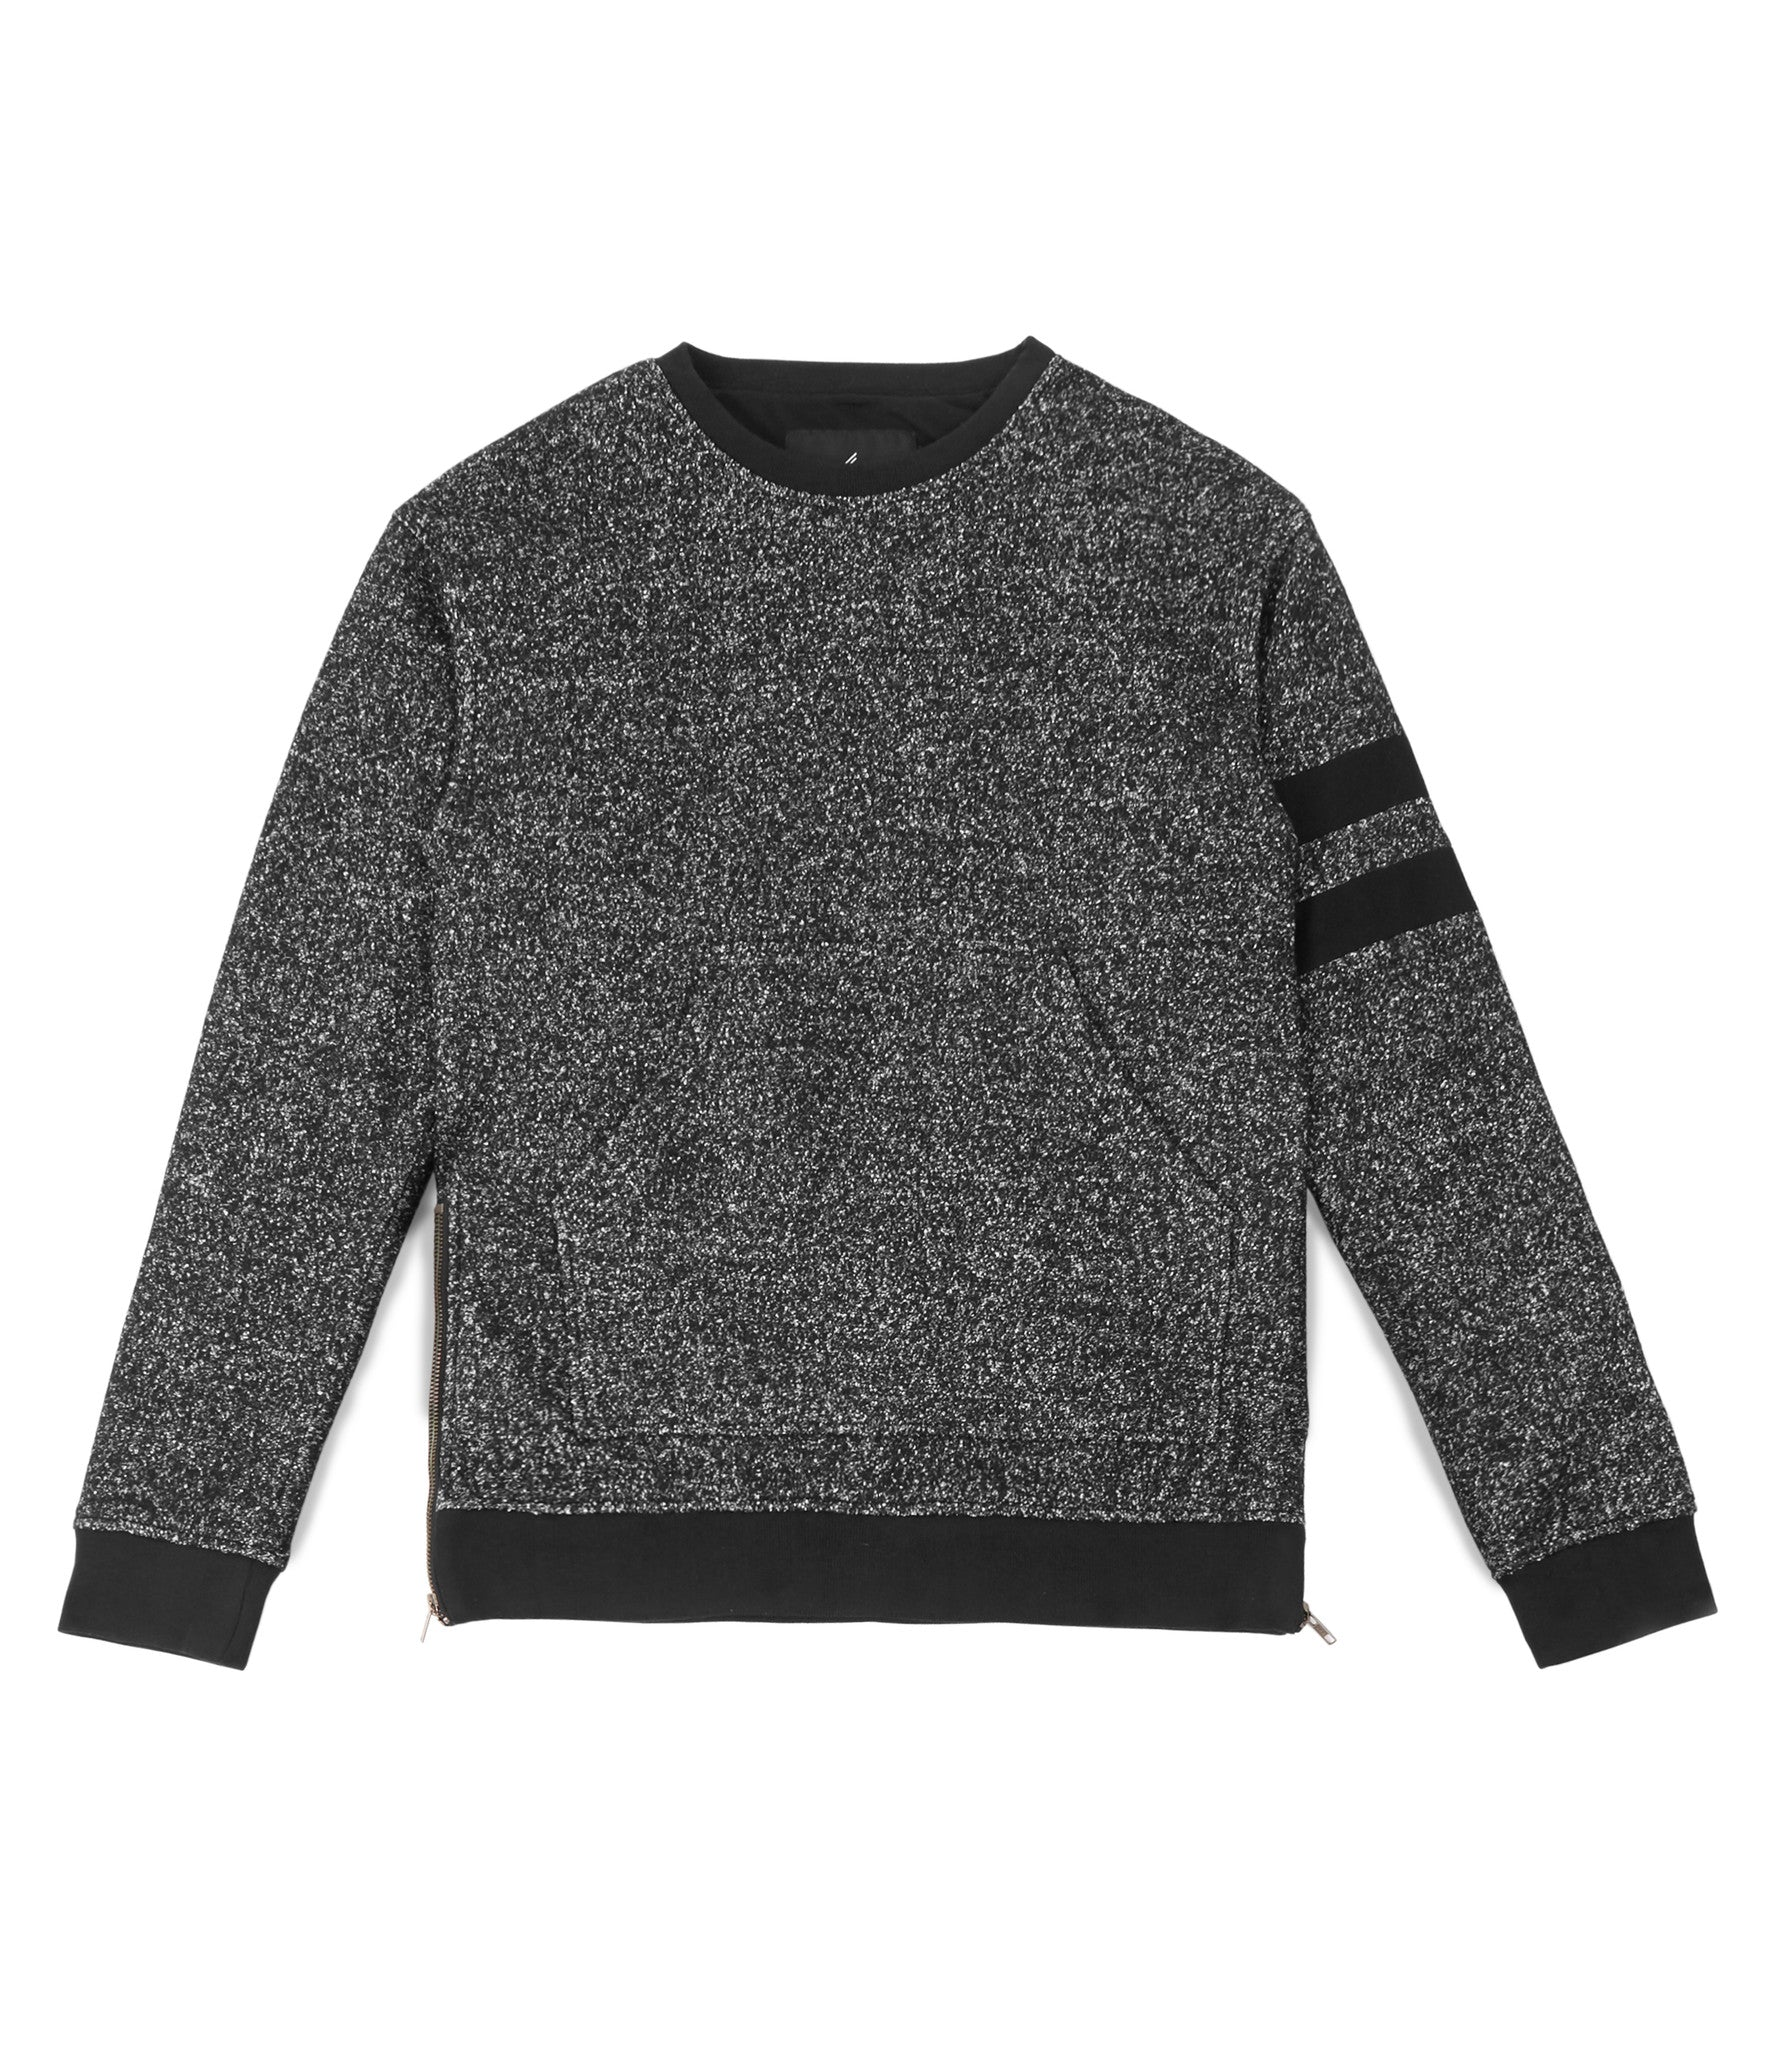 SW301 Oversized Mélange Wool Sweatshirt - Black - underated london - underatedco - 2